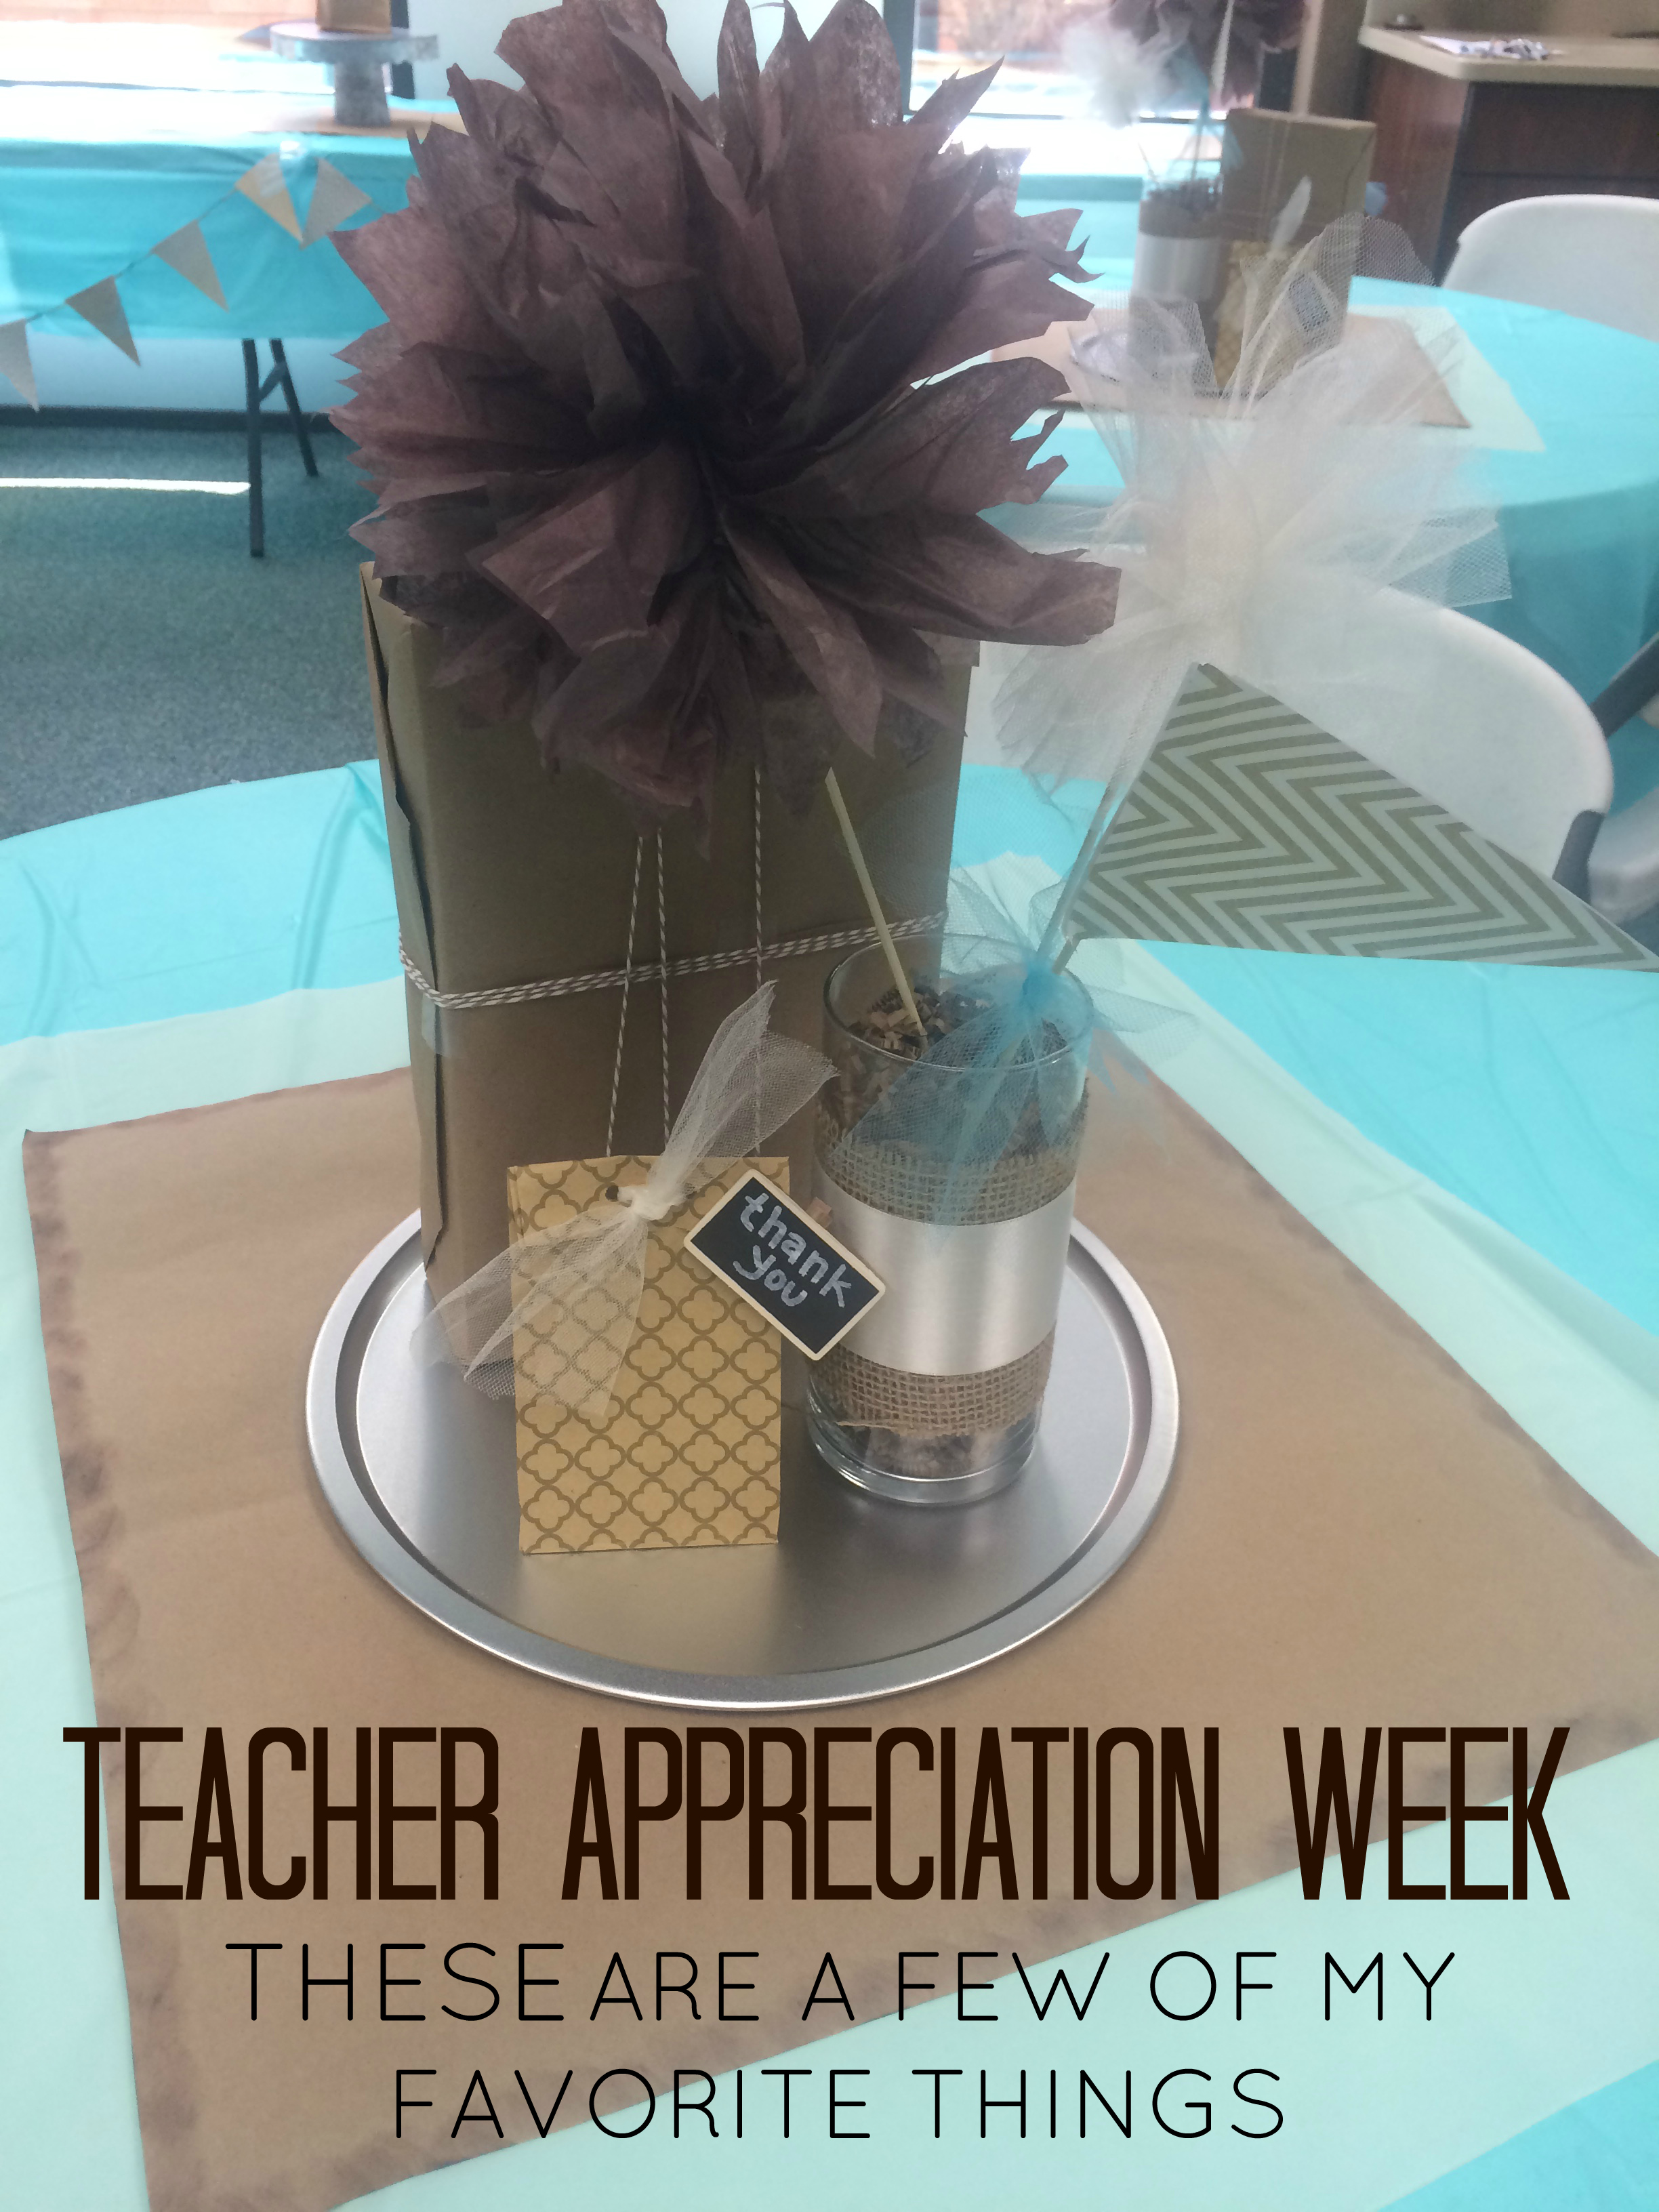 I loved being involved in Teacher Appreciation